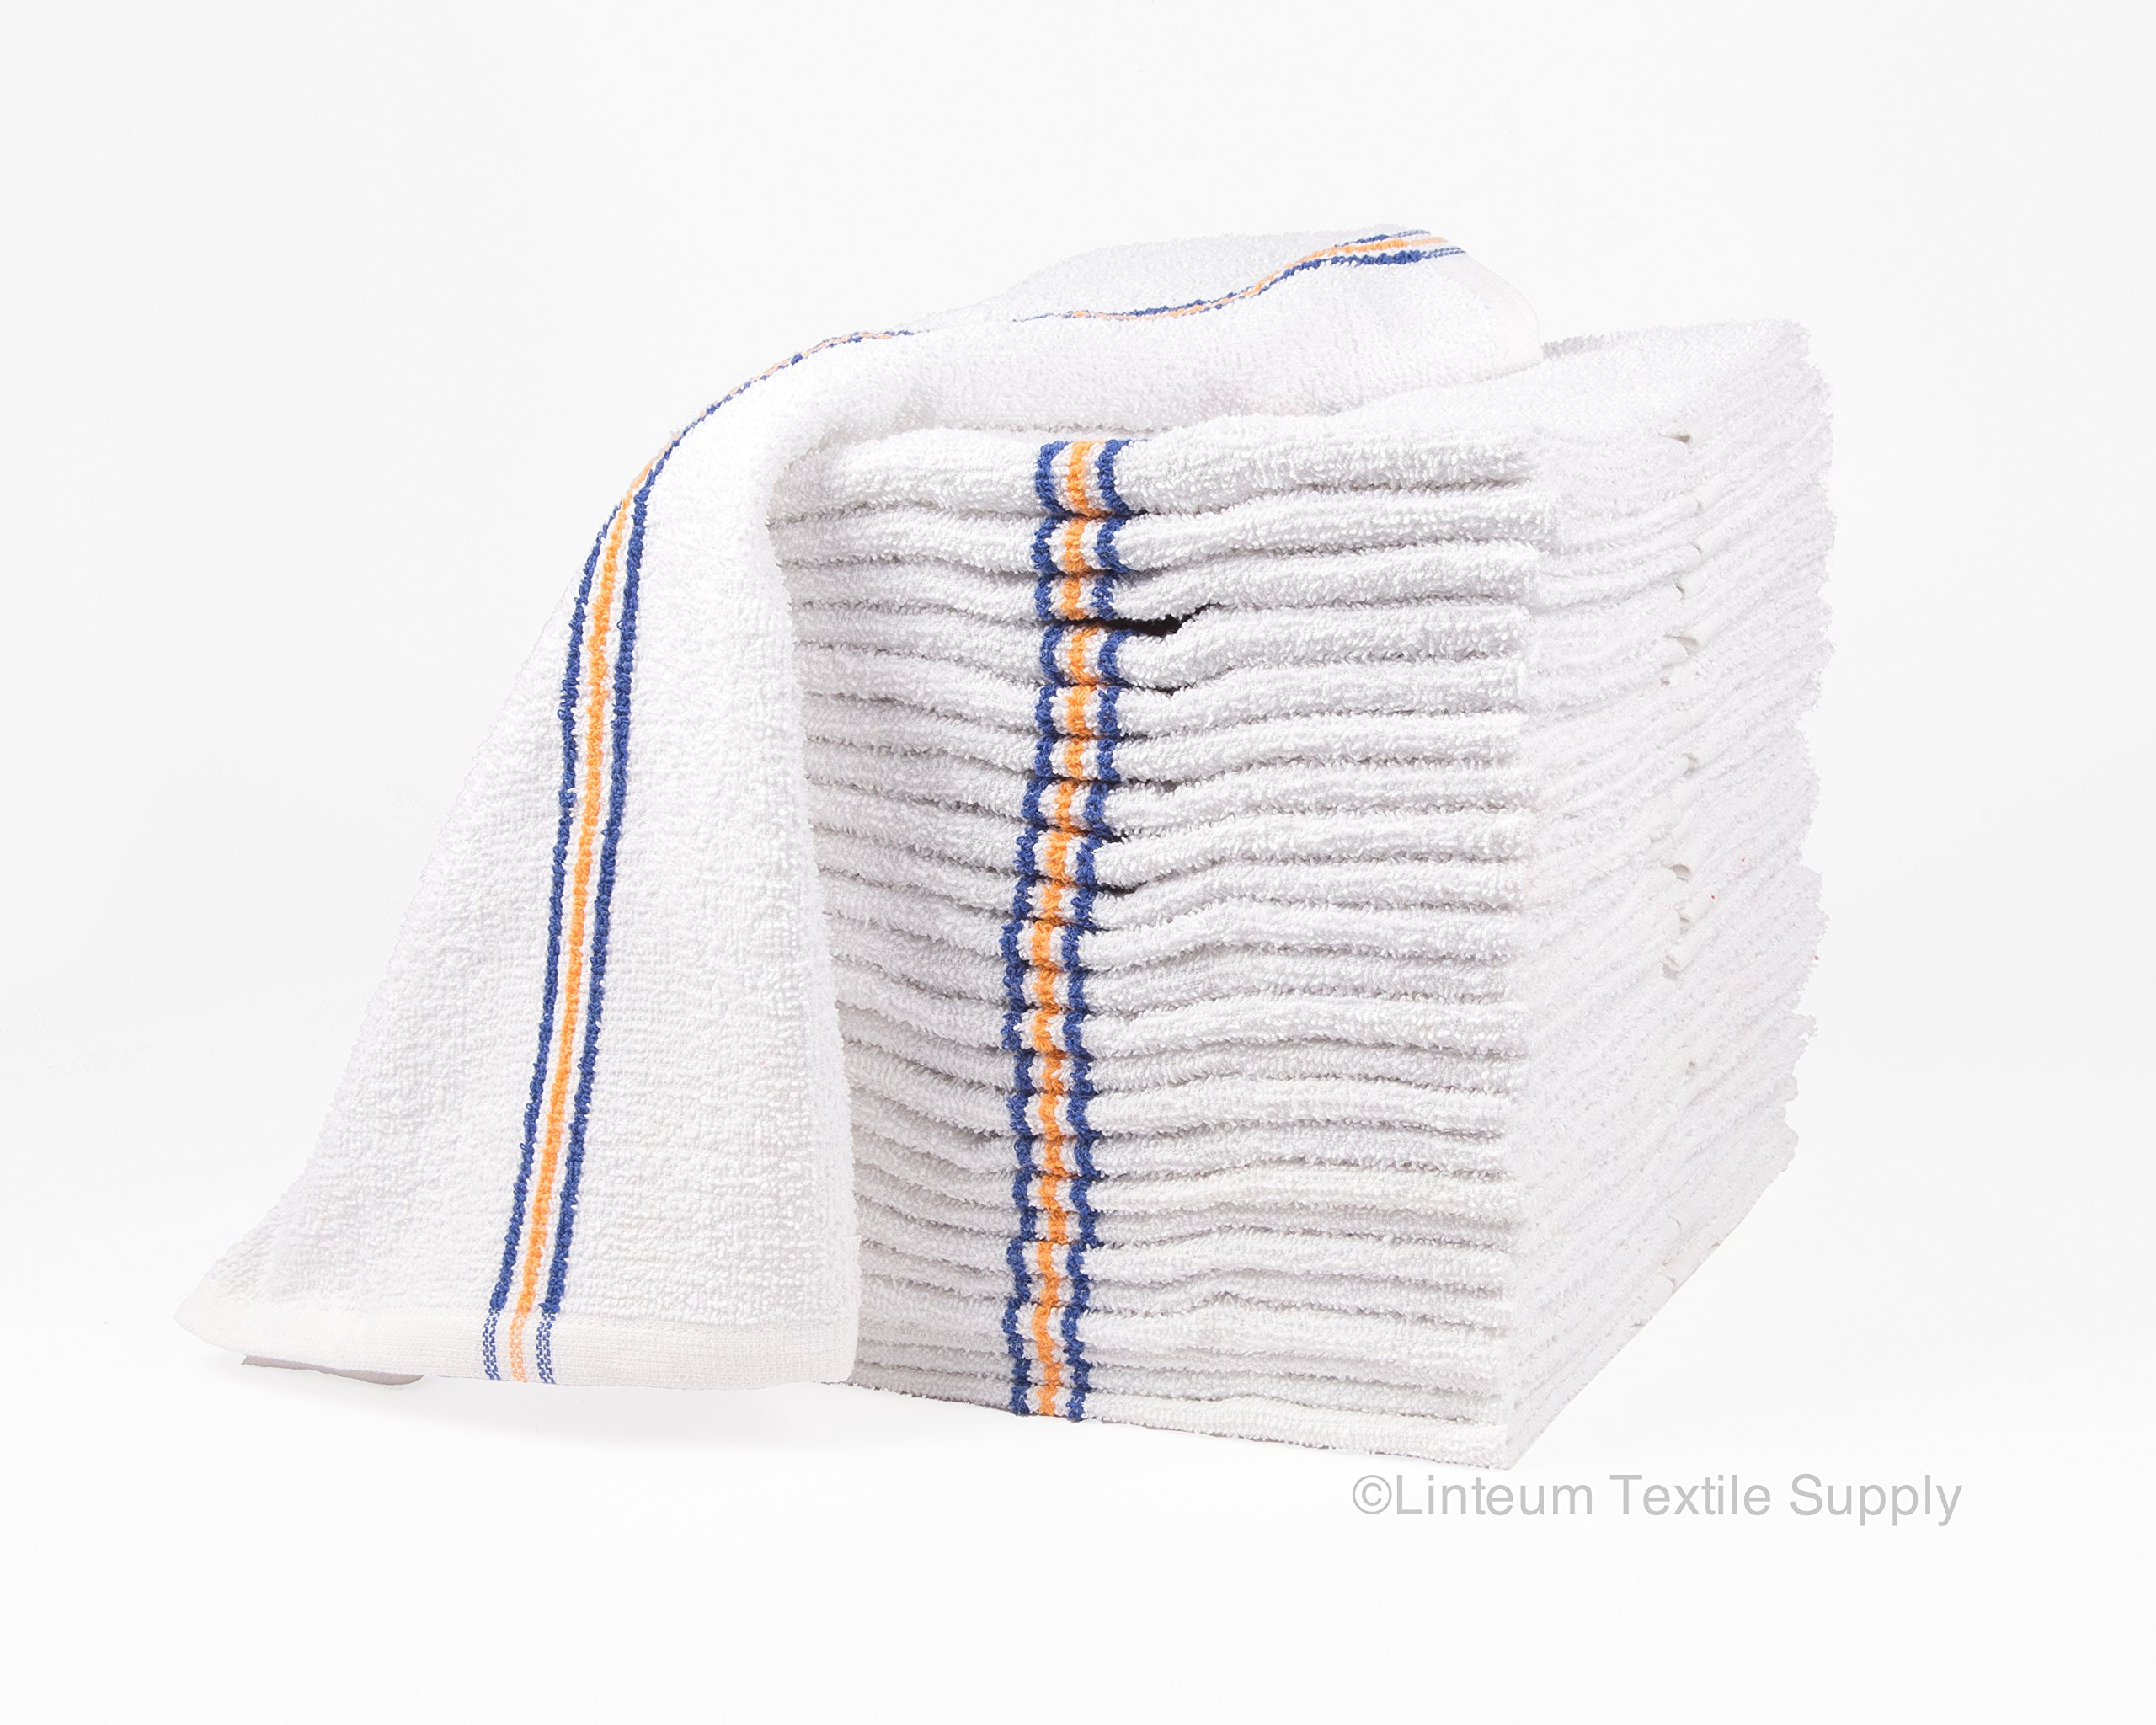 Linteum Textile (60-Pack, 16x19 in) Cotton Bar Towels Super MOPS Kitchen Towels, Strong & Durable by Linteum Textile Supply (Image #1)